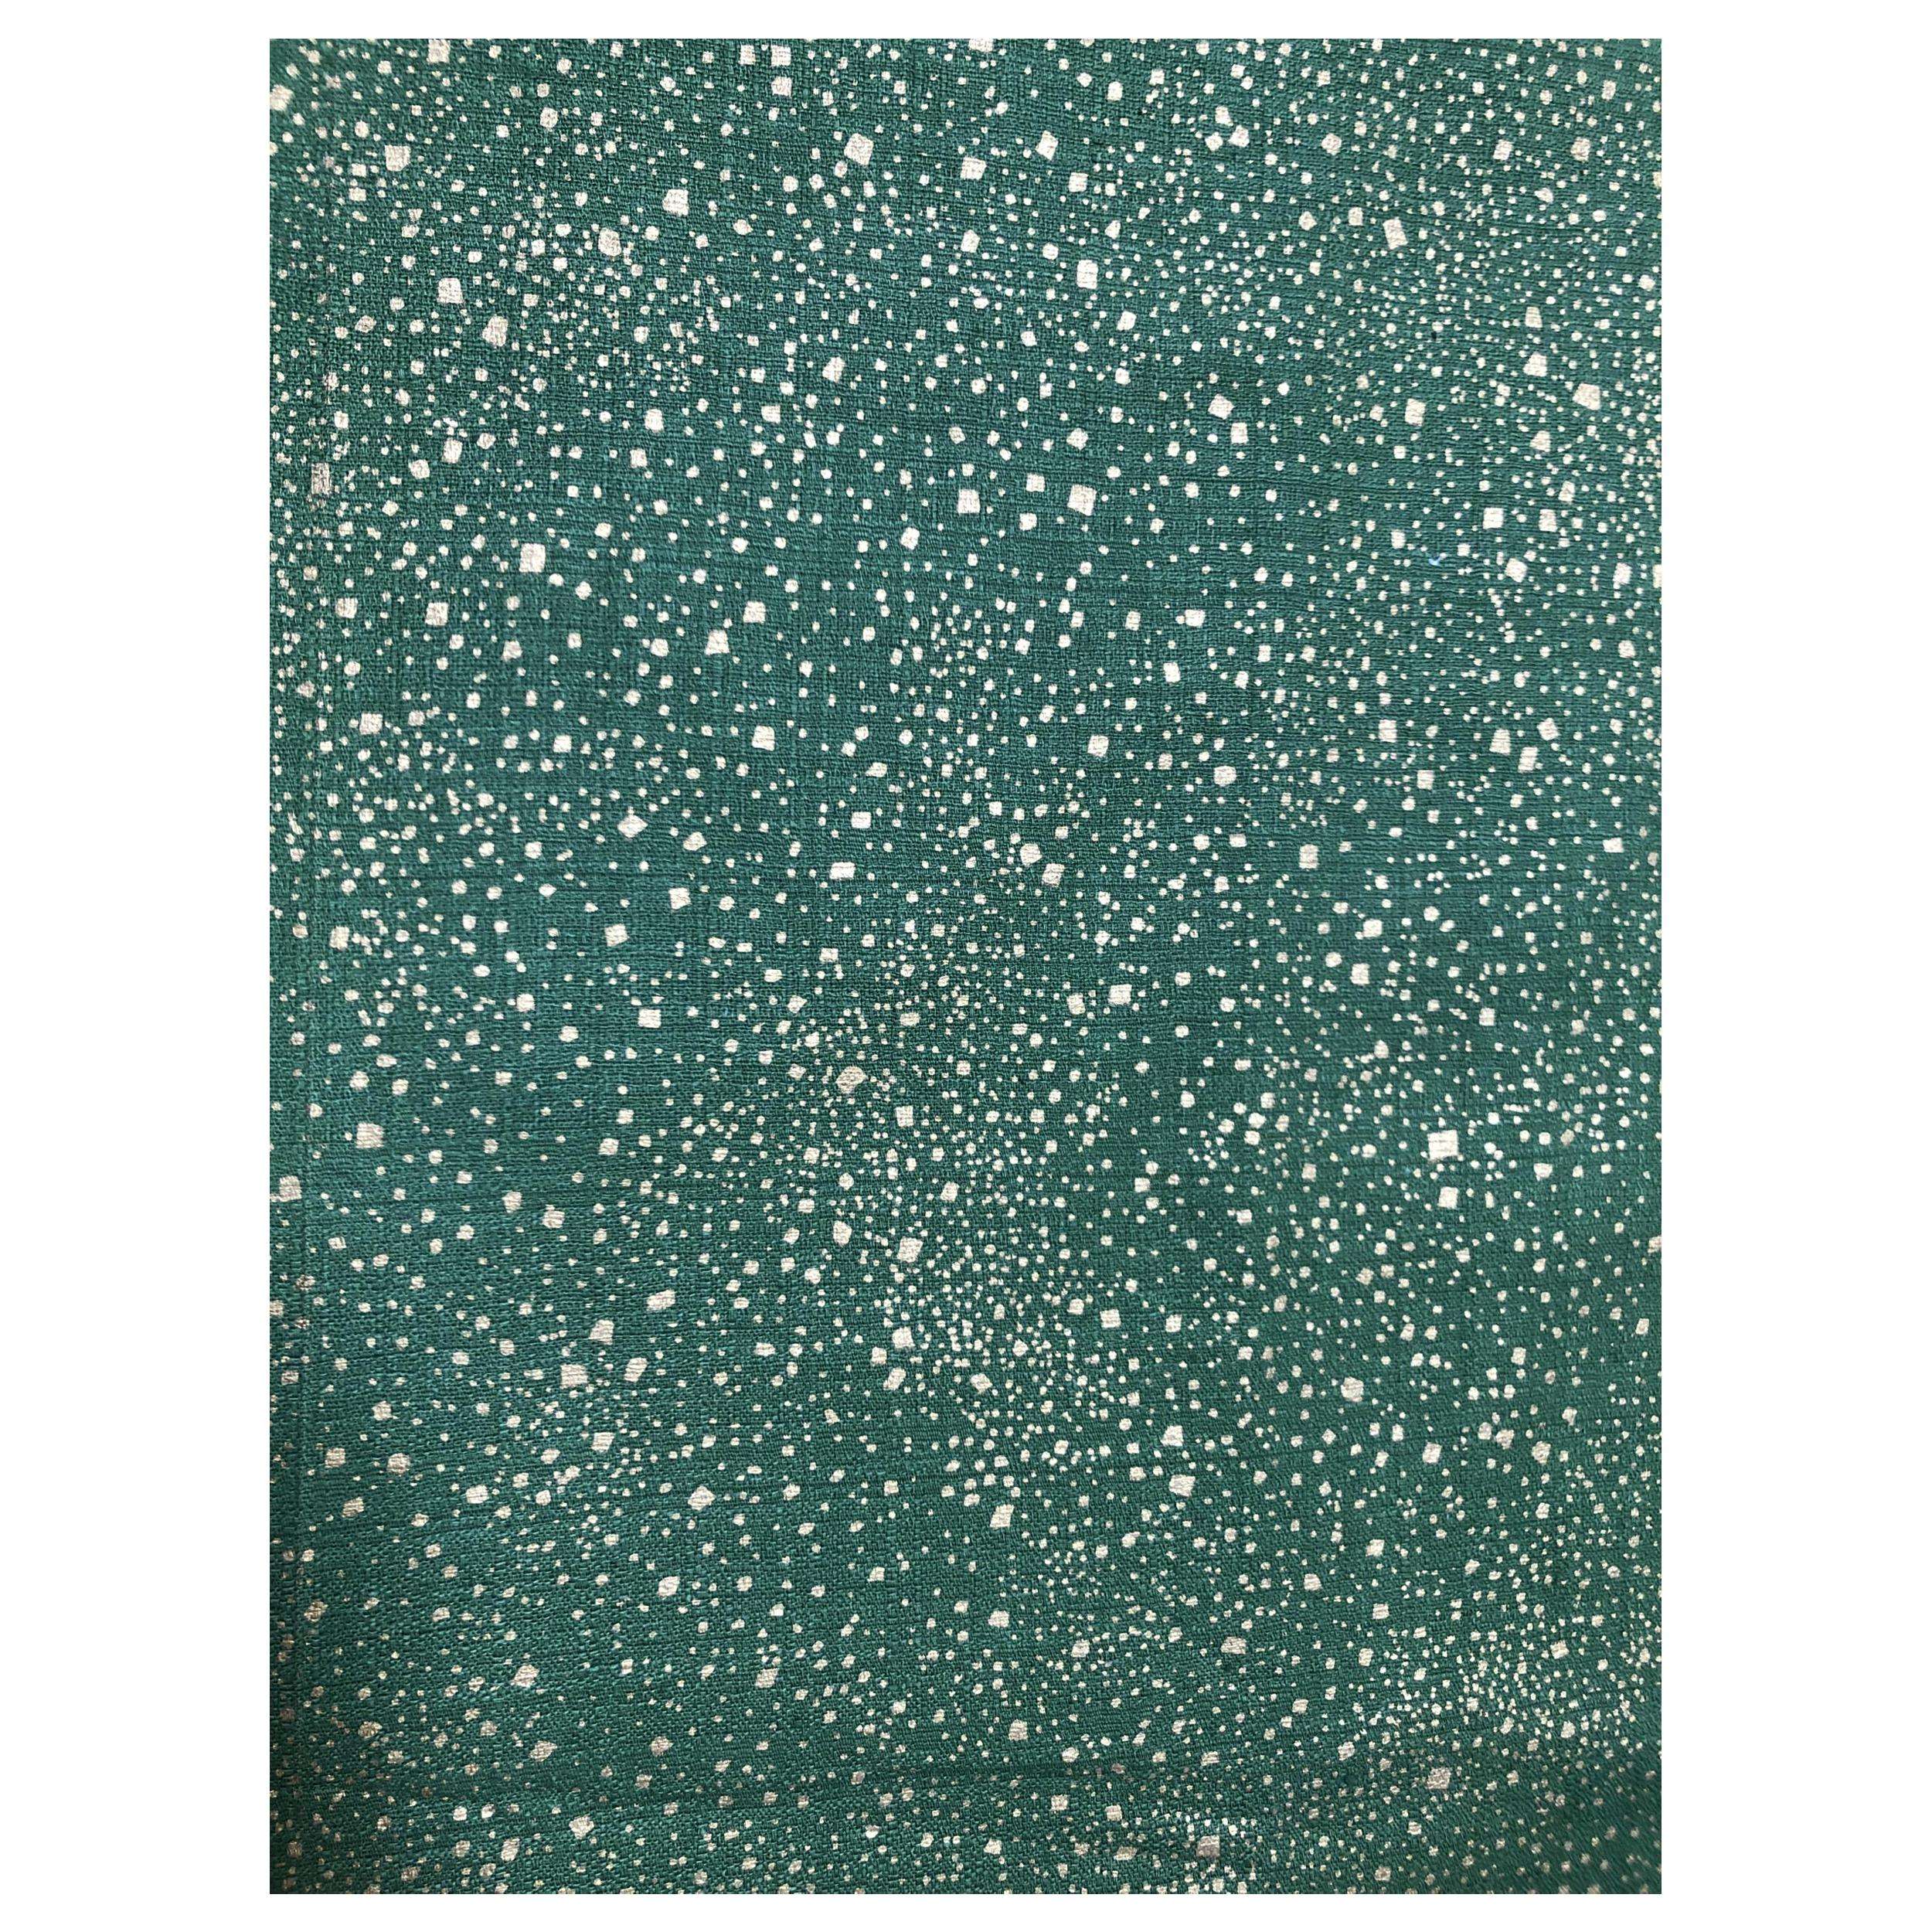 Vintage Mid-Century Green Barkcloth with Gold Speckles